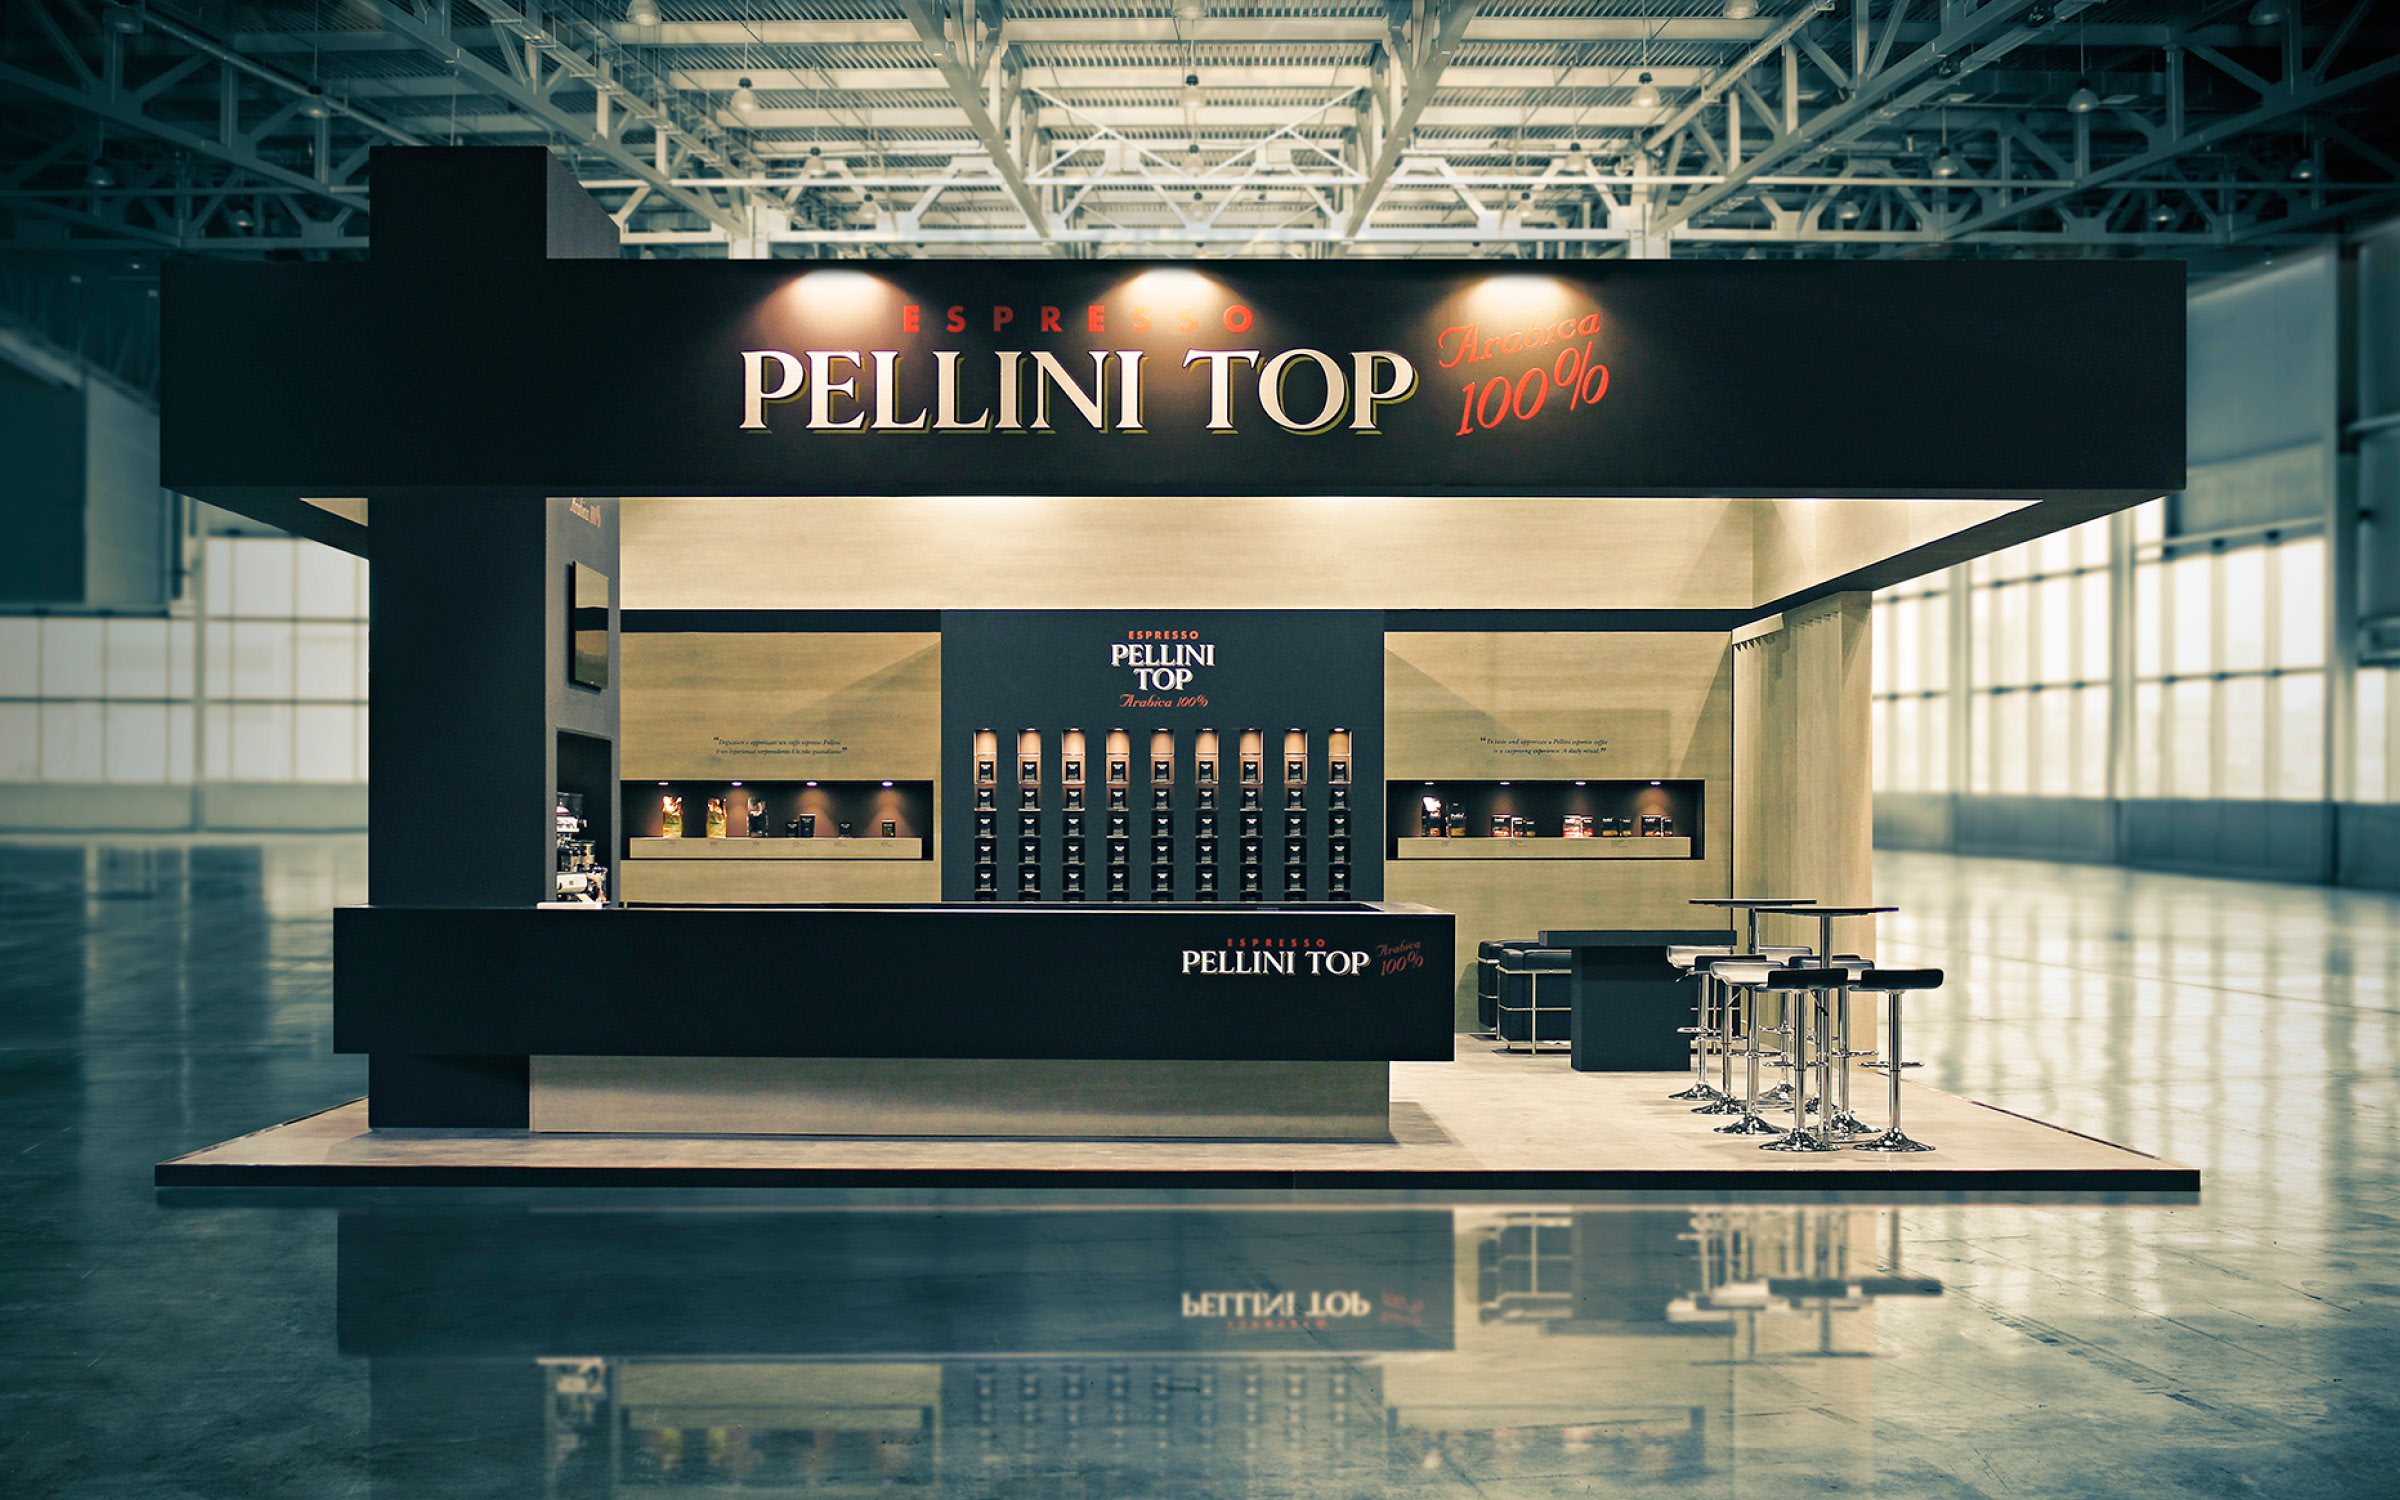 Food Exhibition Stand Design : Pellini caffè host hangar design group